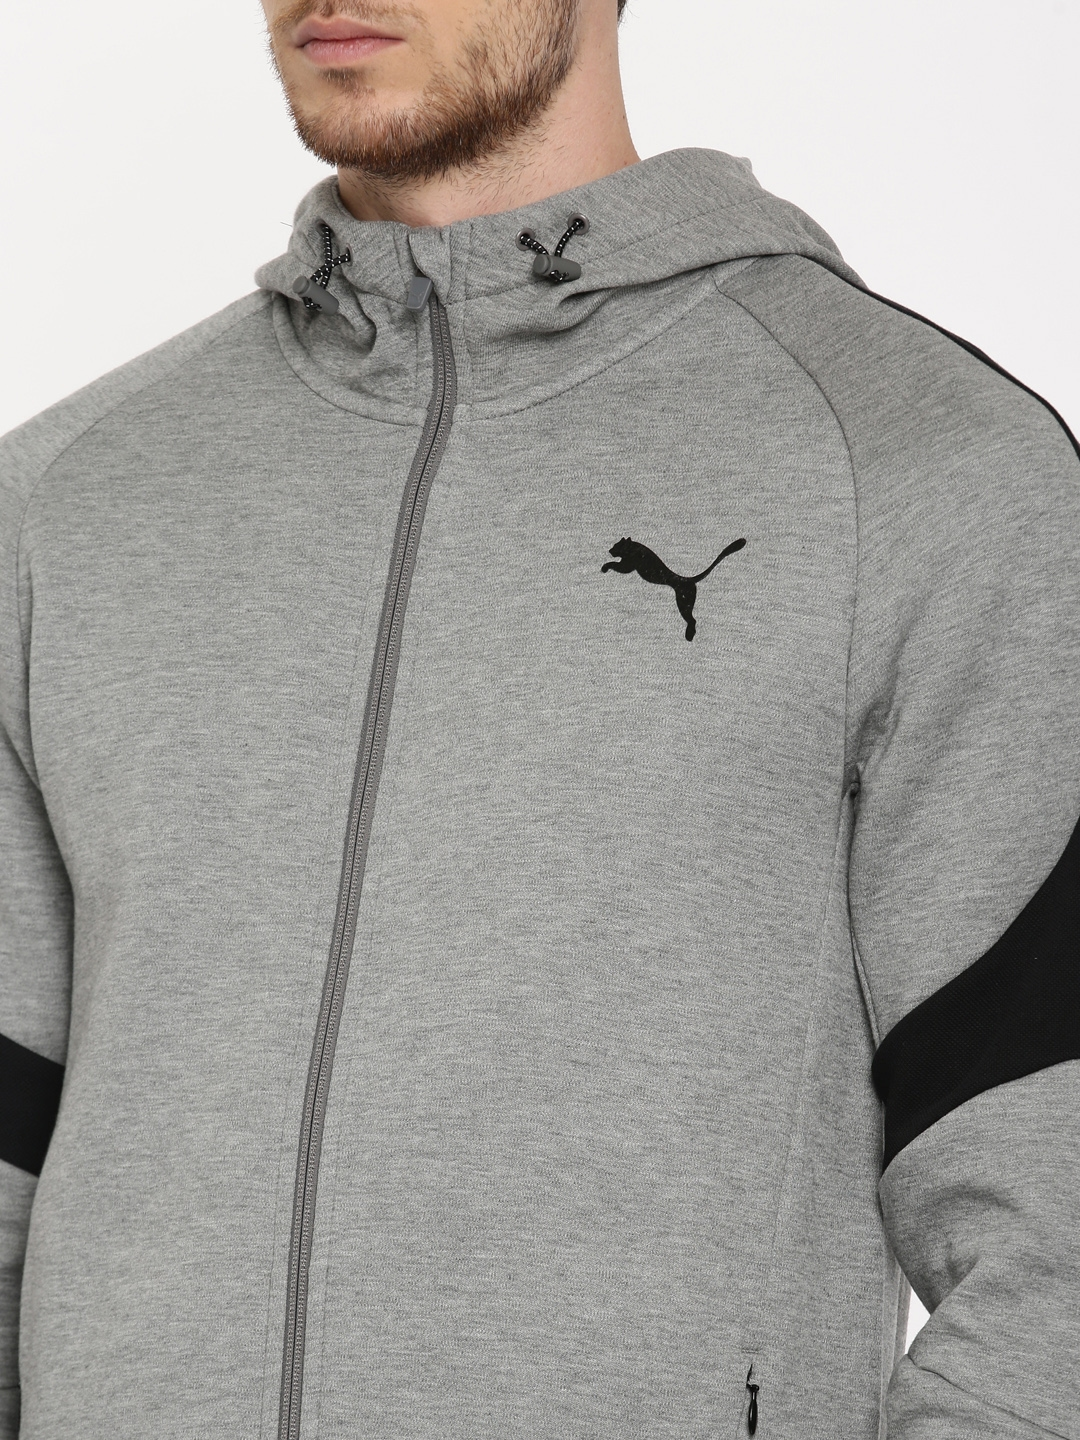 4797b6da5360 Buy PUMA MEN Grey Melange Evostripe Move FZ Hoody Sweatshirt ...